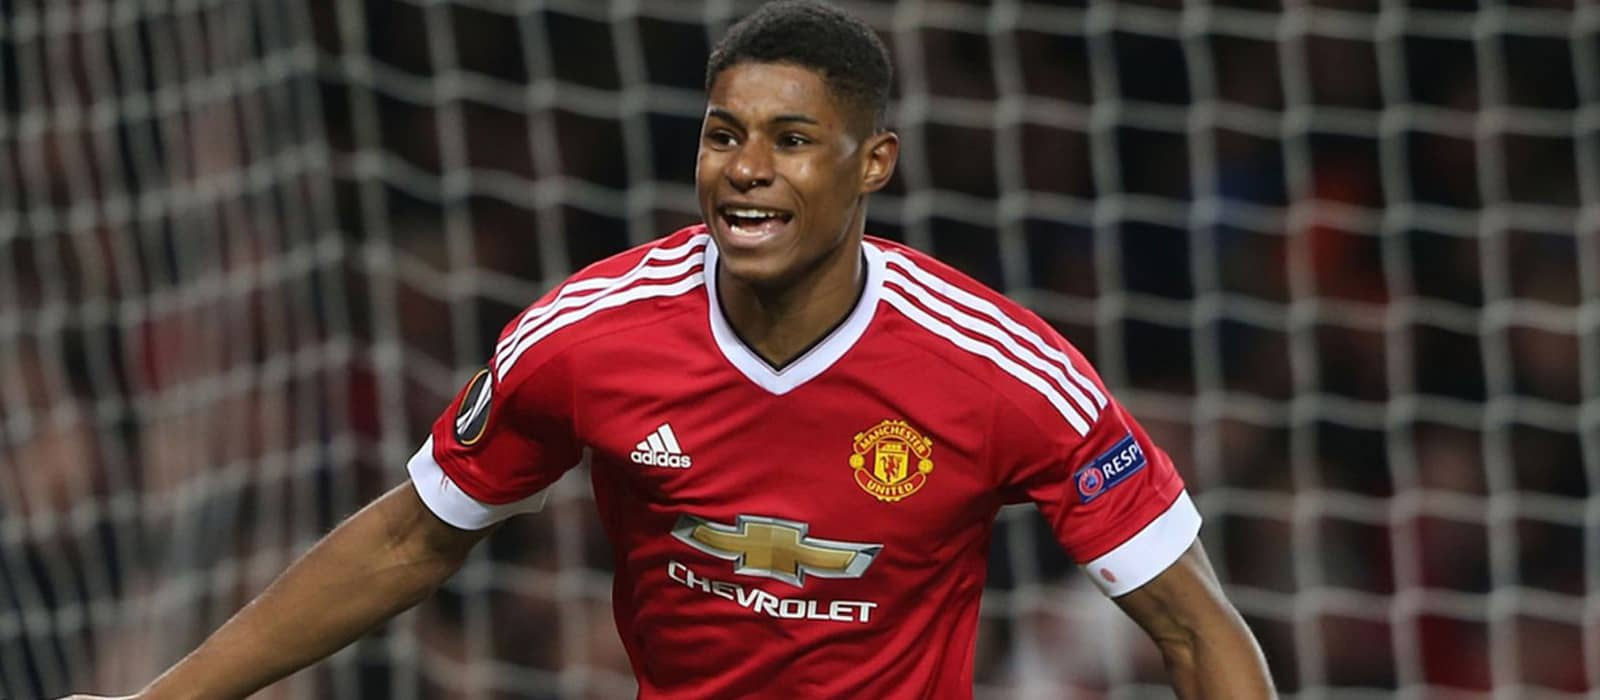 Louis van Gaal insists Marcus Rashford comparisons with Cristiano Ronaldo are too early